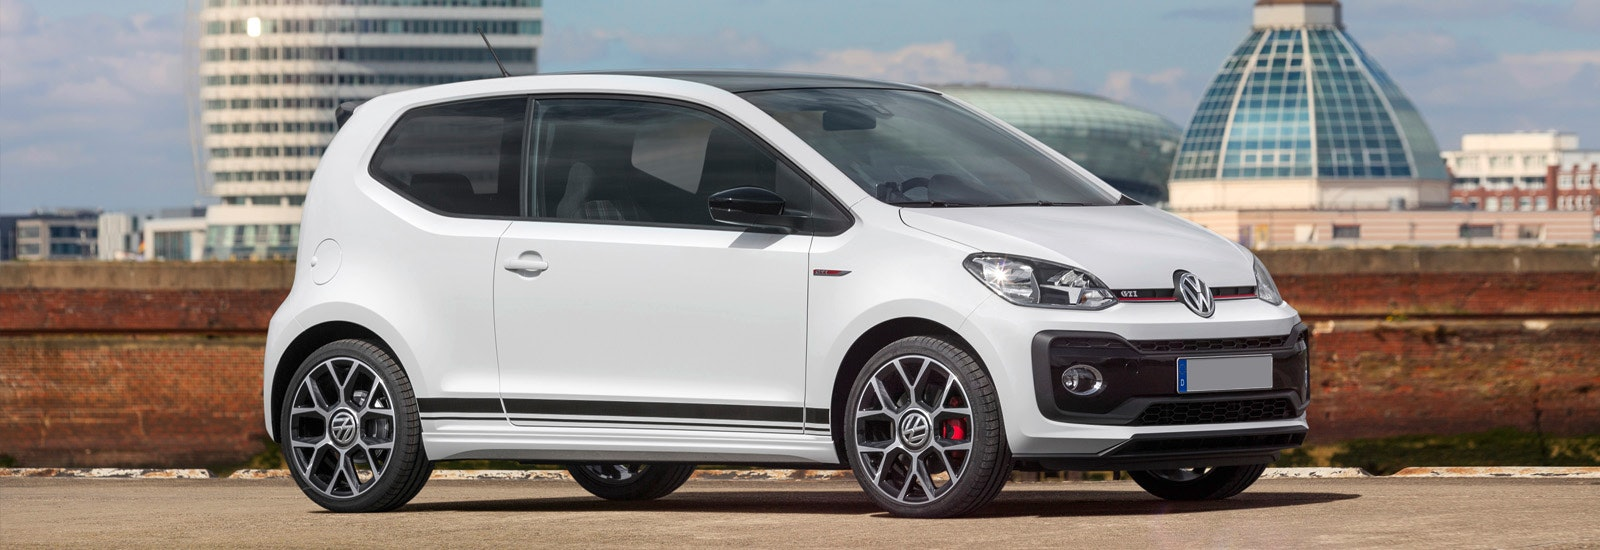 Vw Up Gti Price Specs And Release Date Carwow